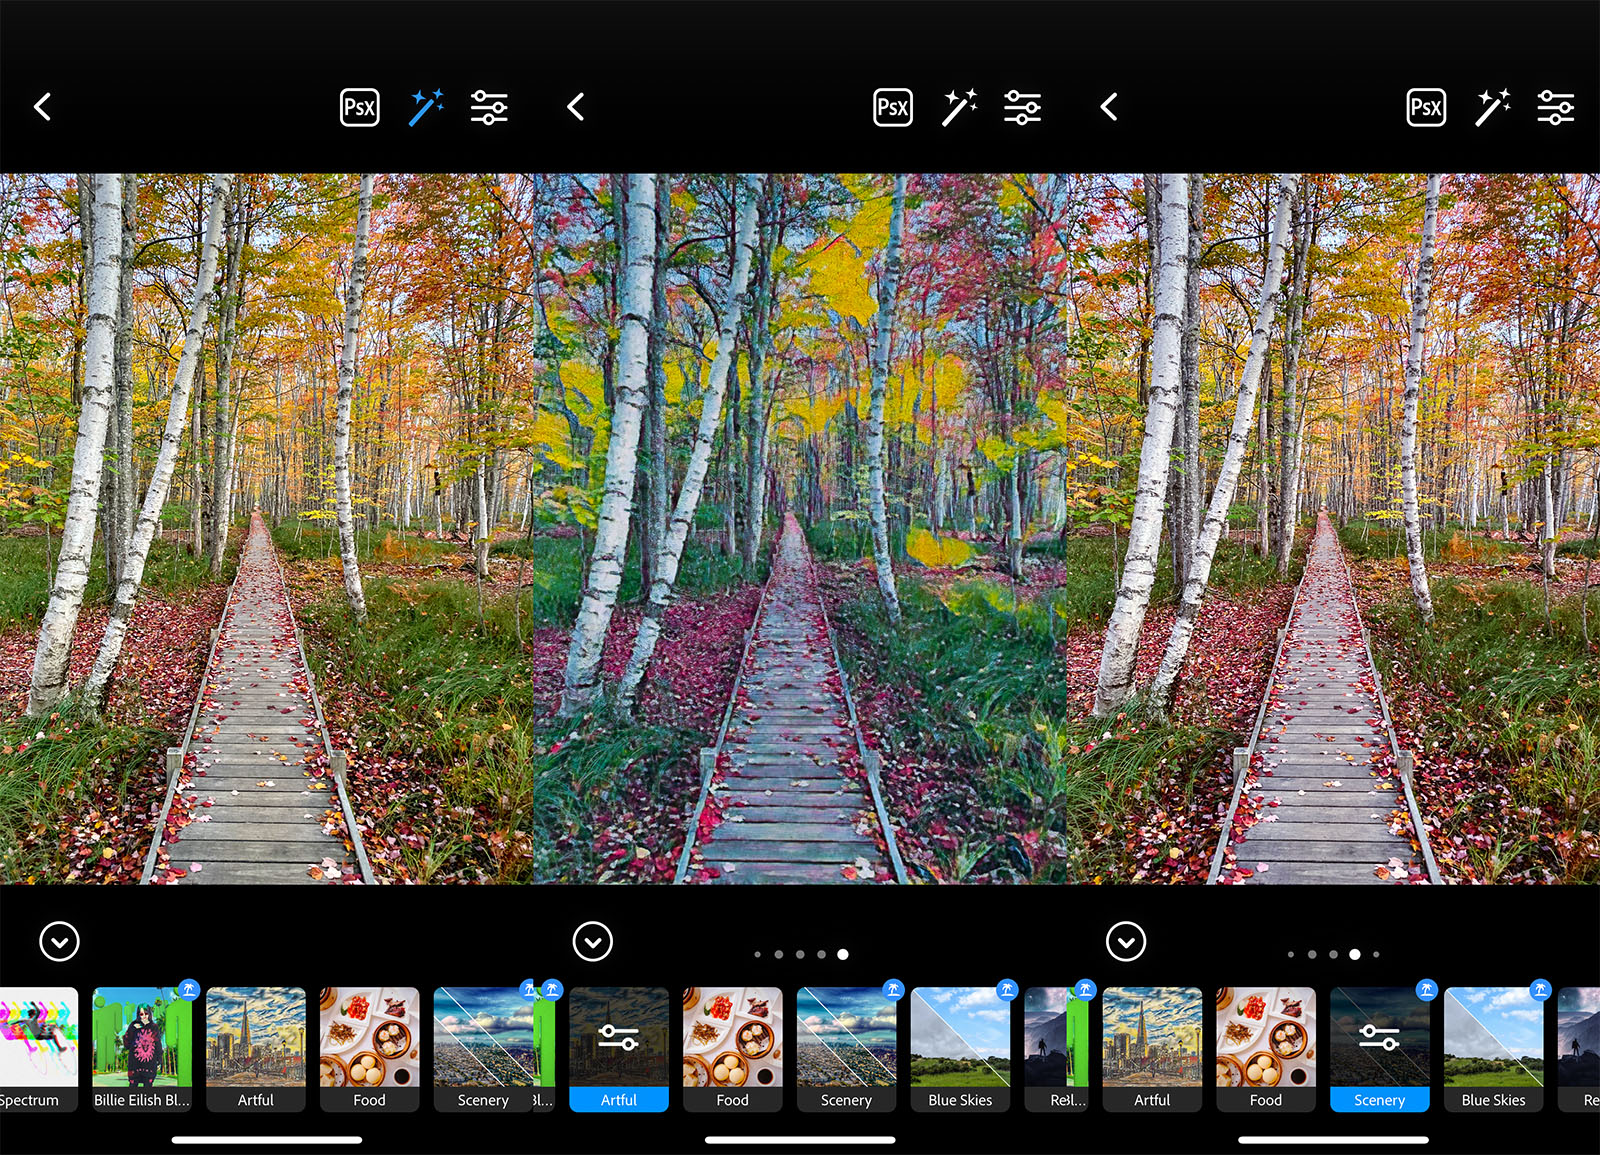 Adobe Photoshop Camera app released for Android and iOS, offering AI-powered 'Lenses': Digital Photography Review